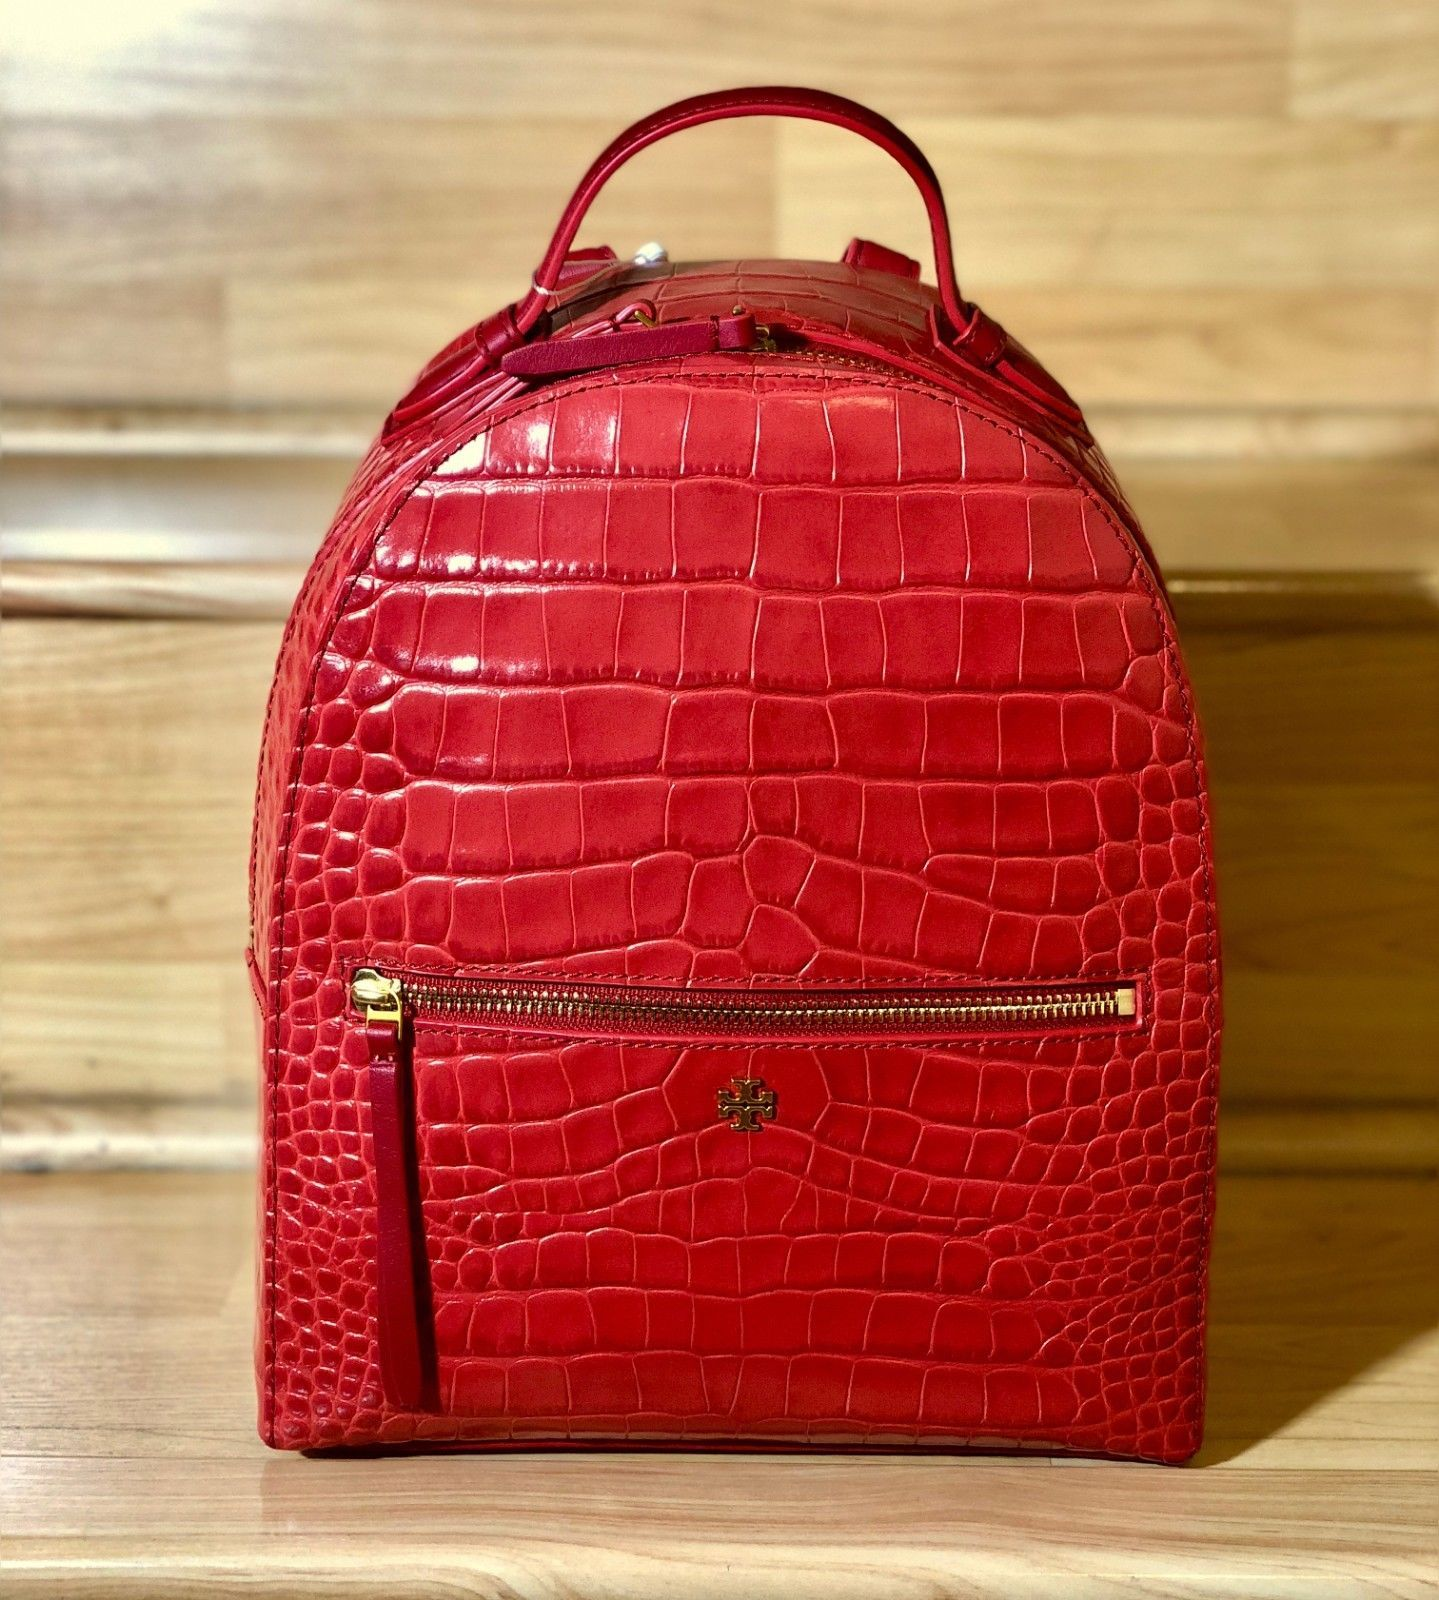 730689bcd88 NWT 100% Authentic Tory Burch Croc-Embossed and 50 similar items